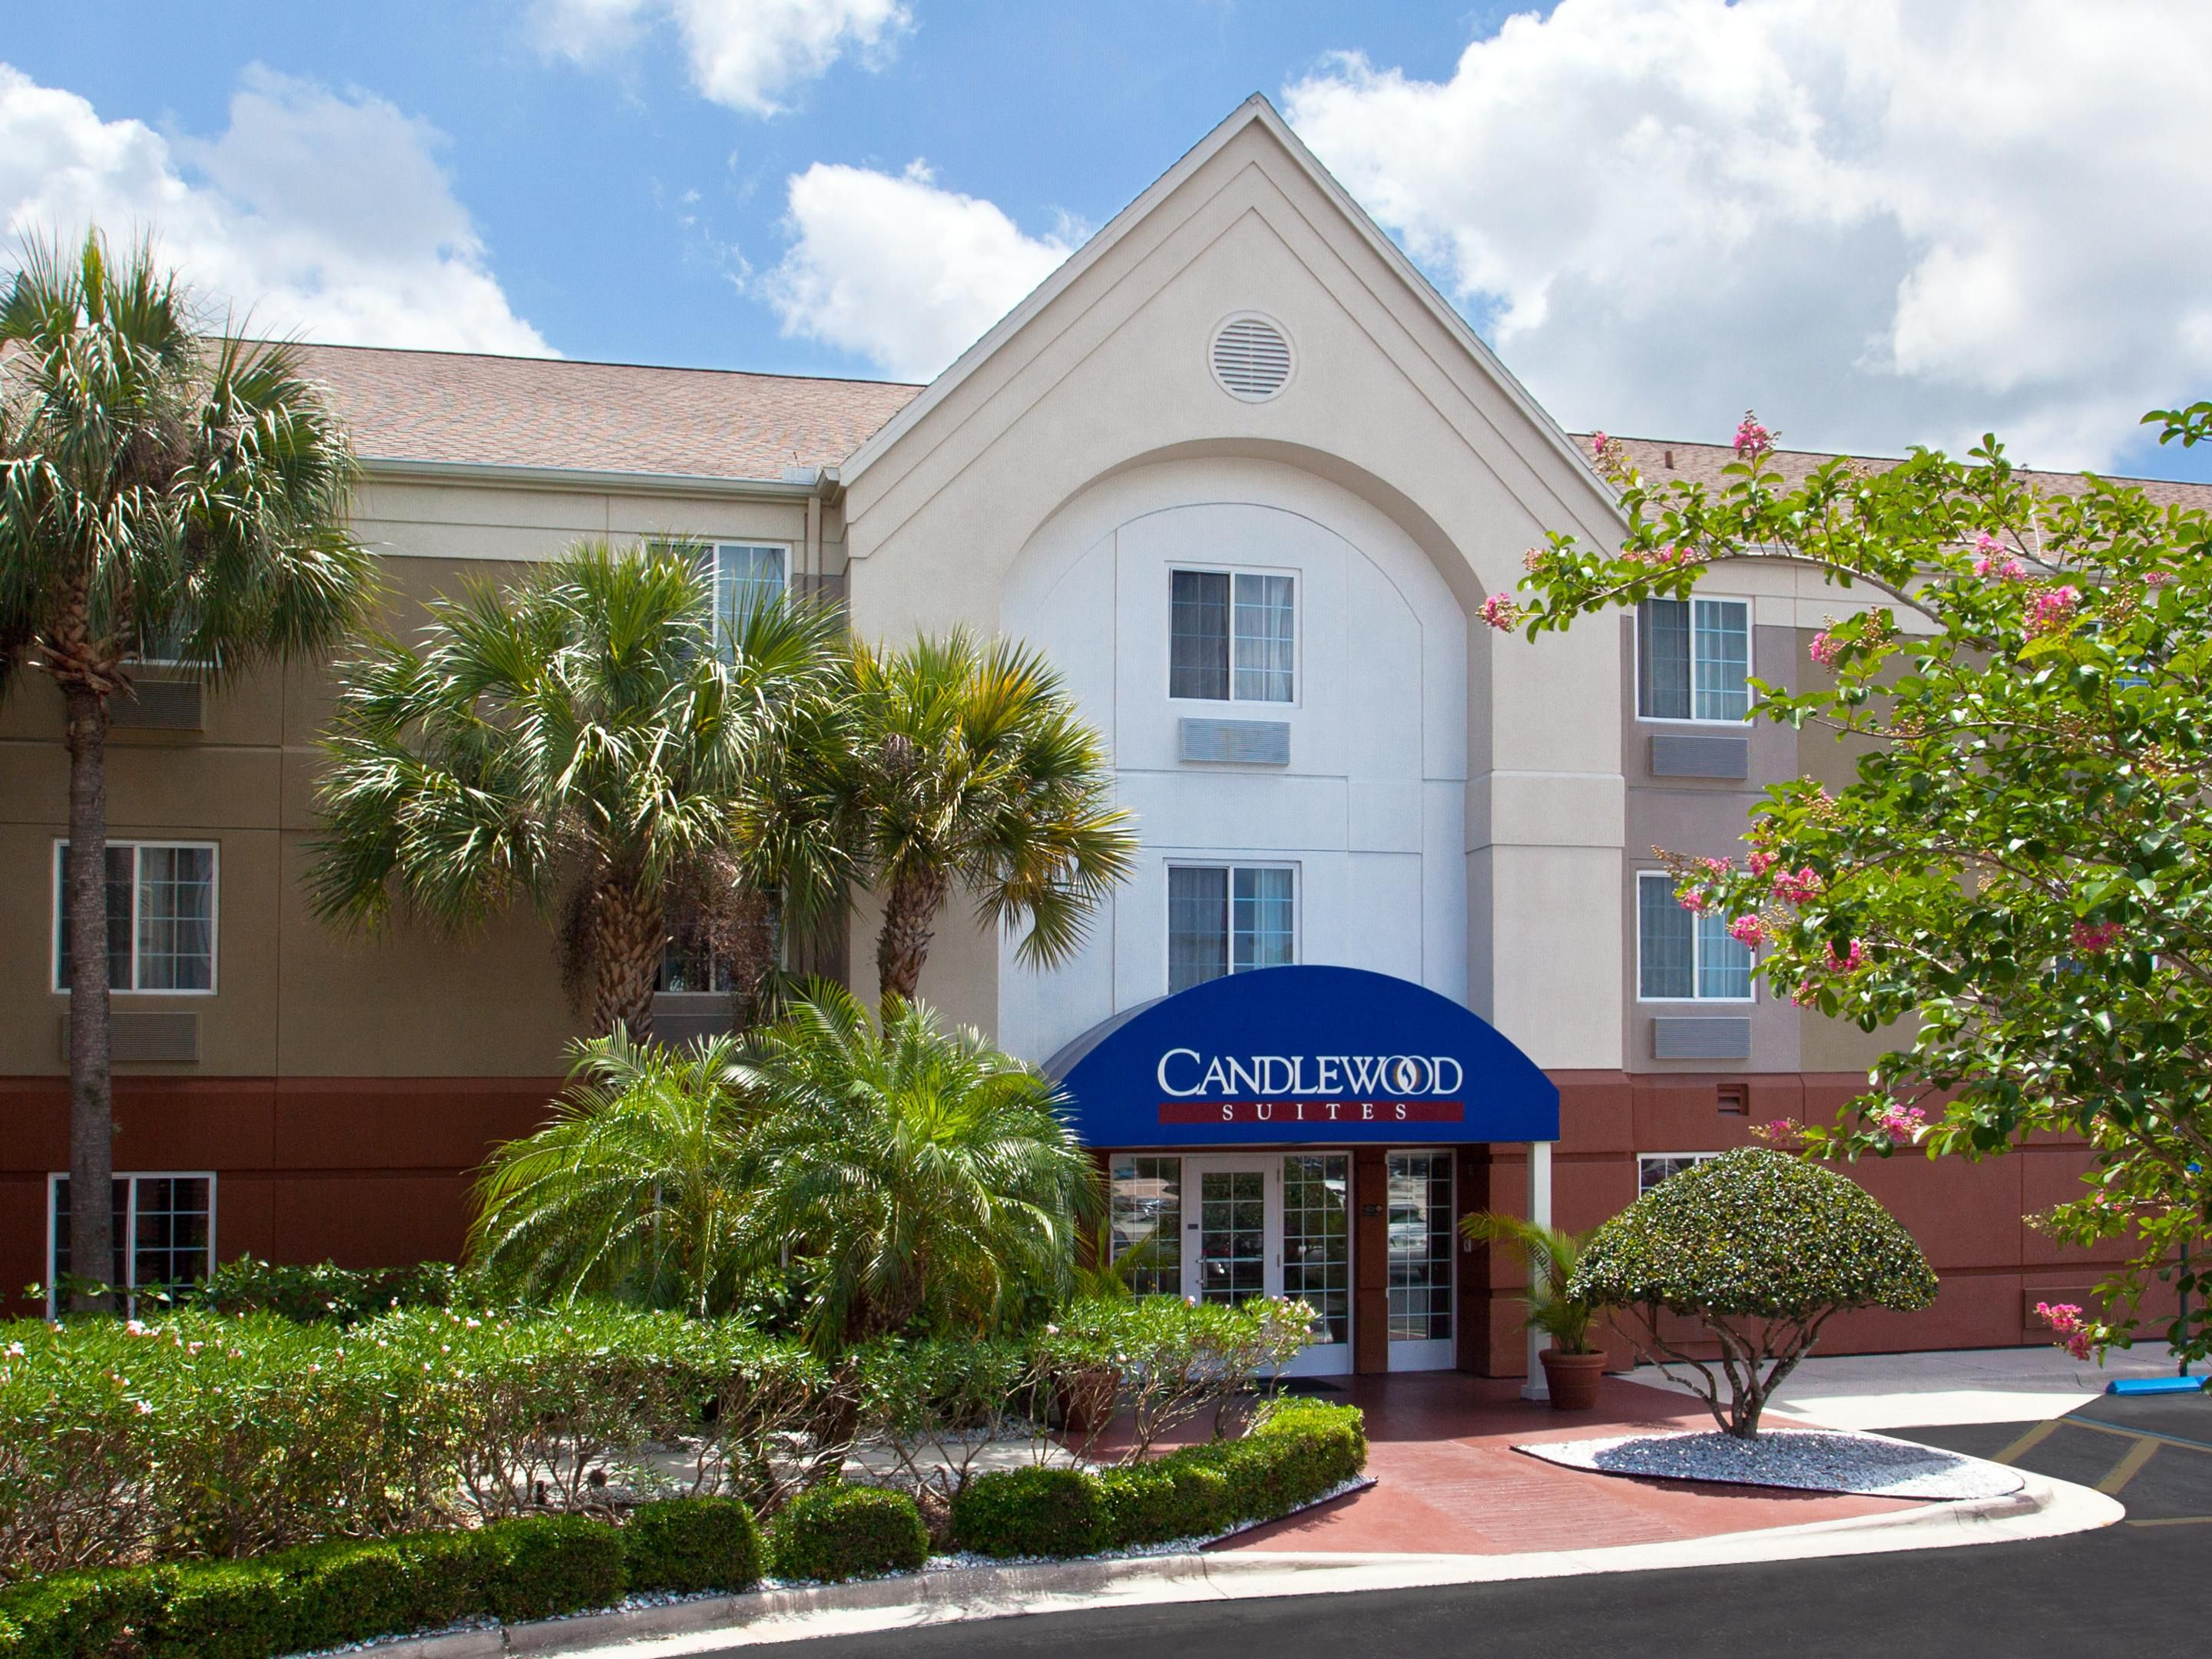 Extended Stay Hotels in Clearwater, FL - Candlewood Suites